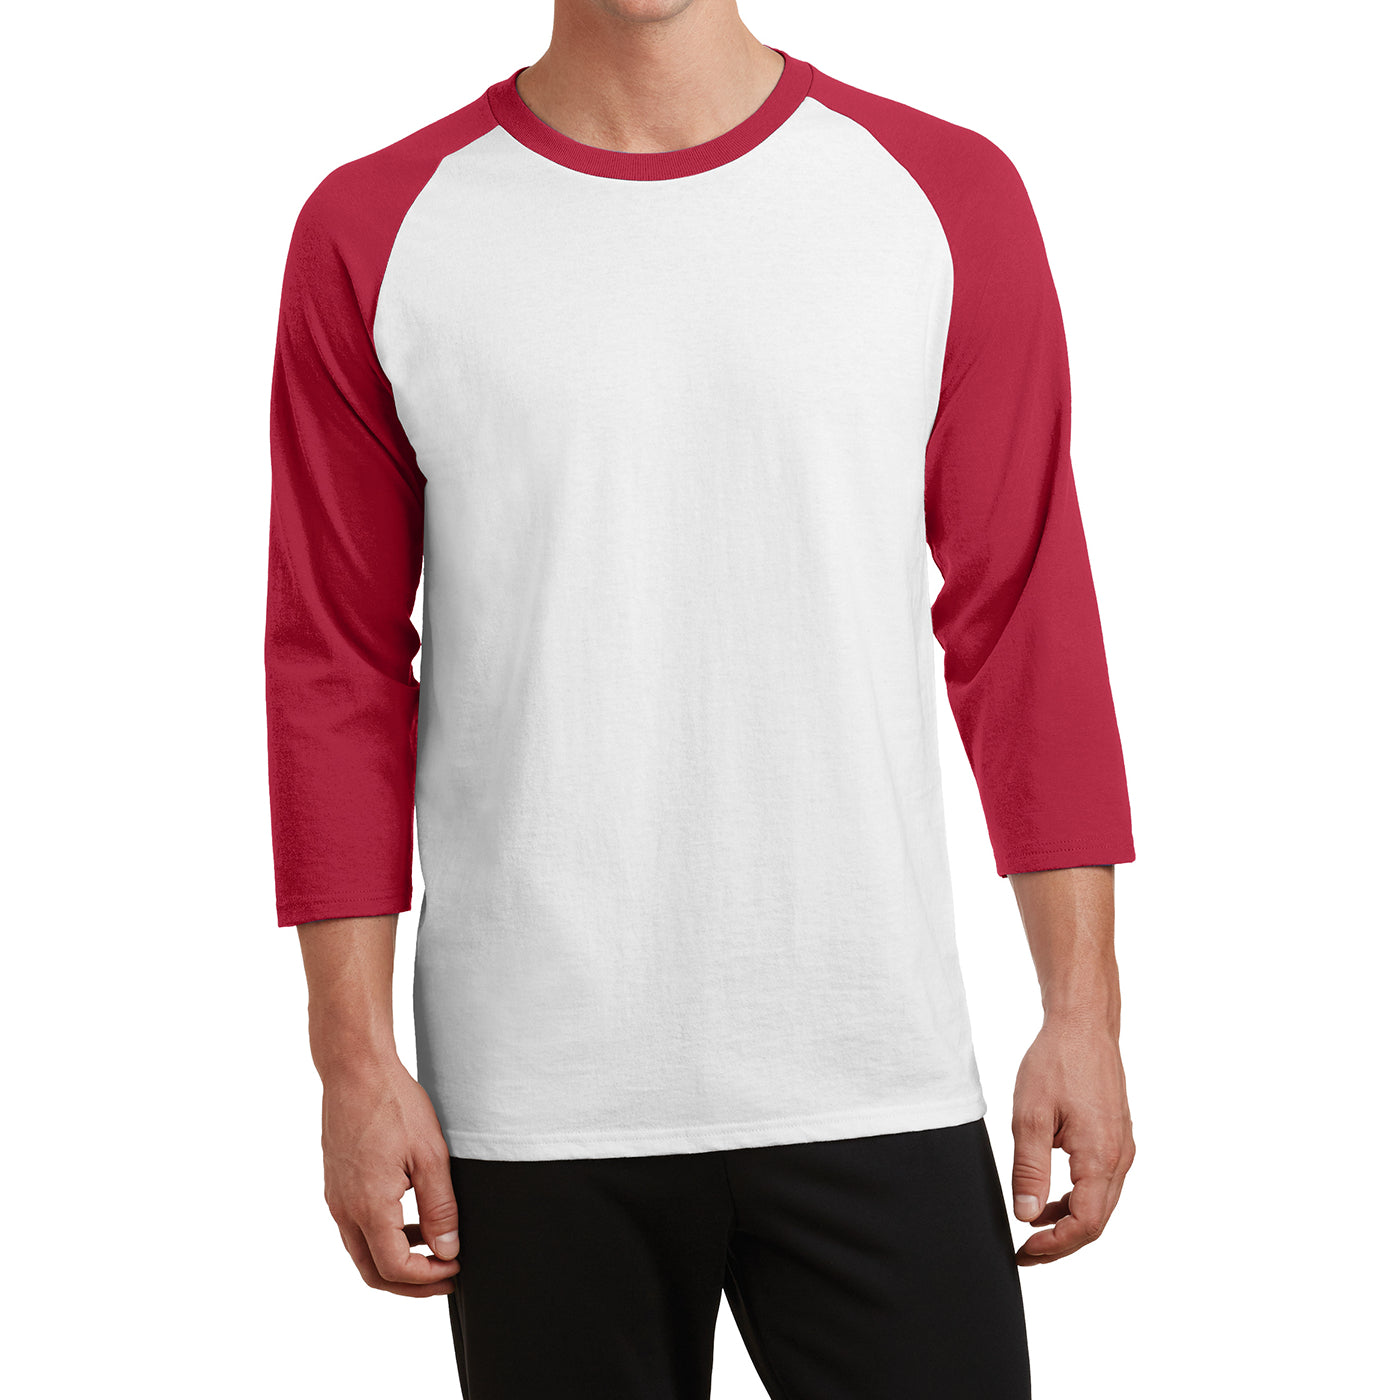 Men's Core Blend 3/4-Sleeve Raglan Tee - White/ Red - Front